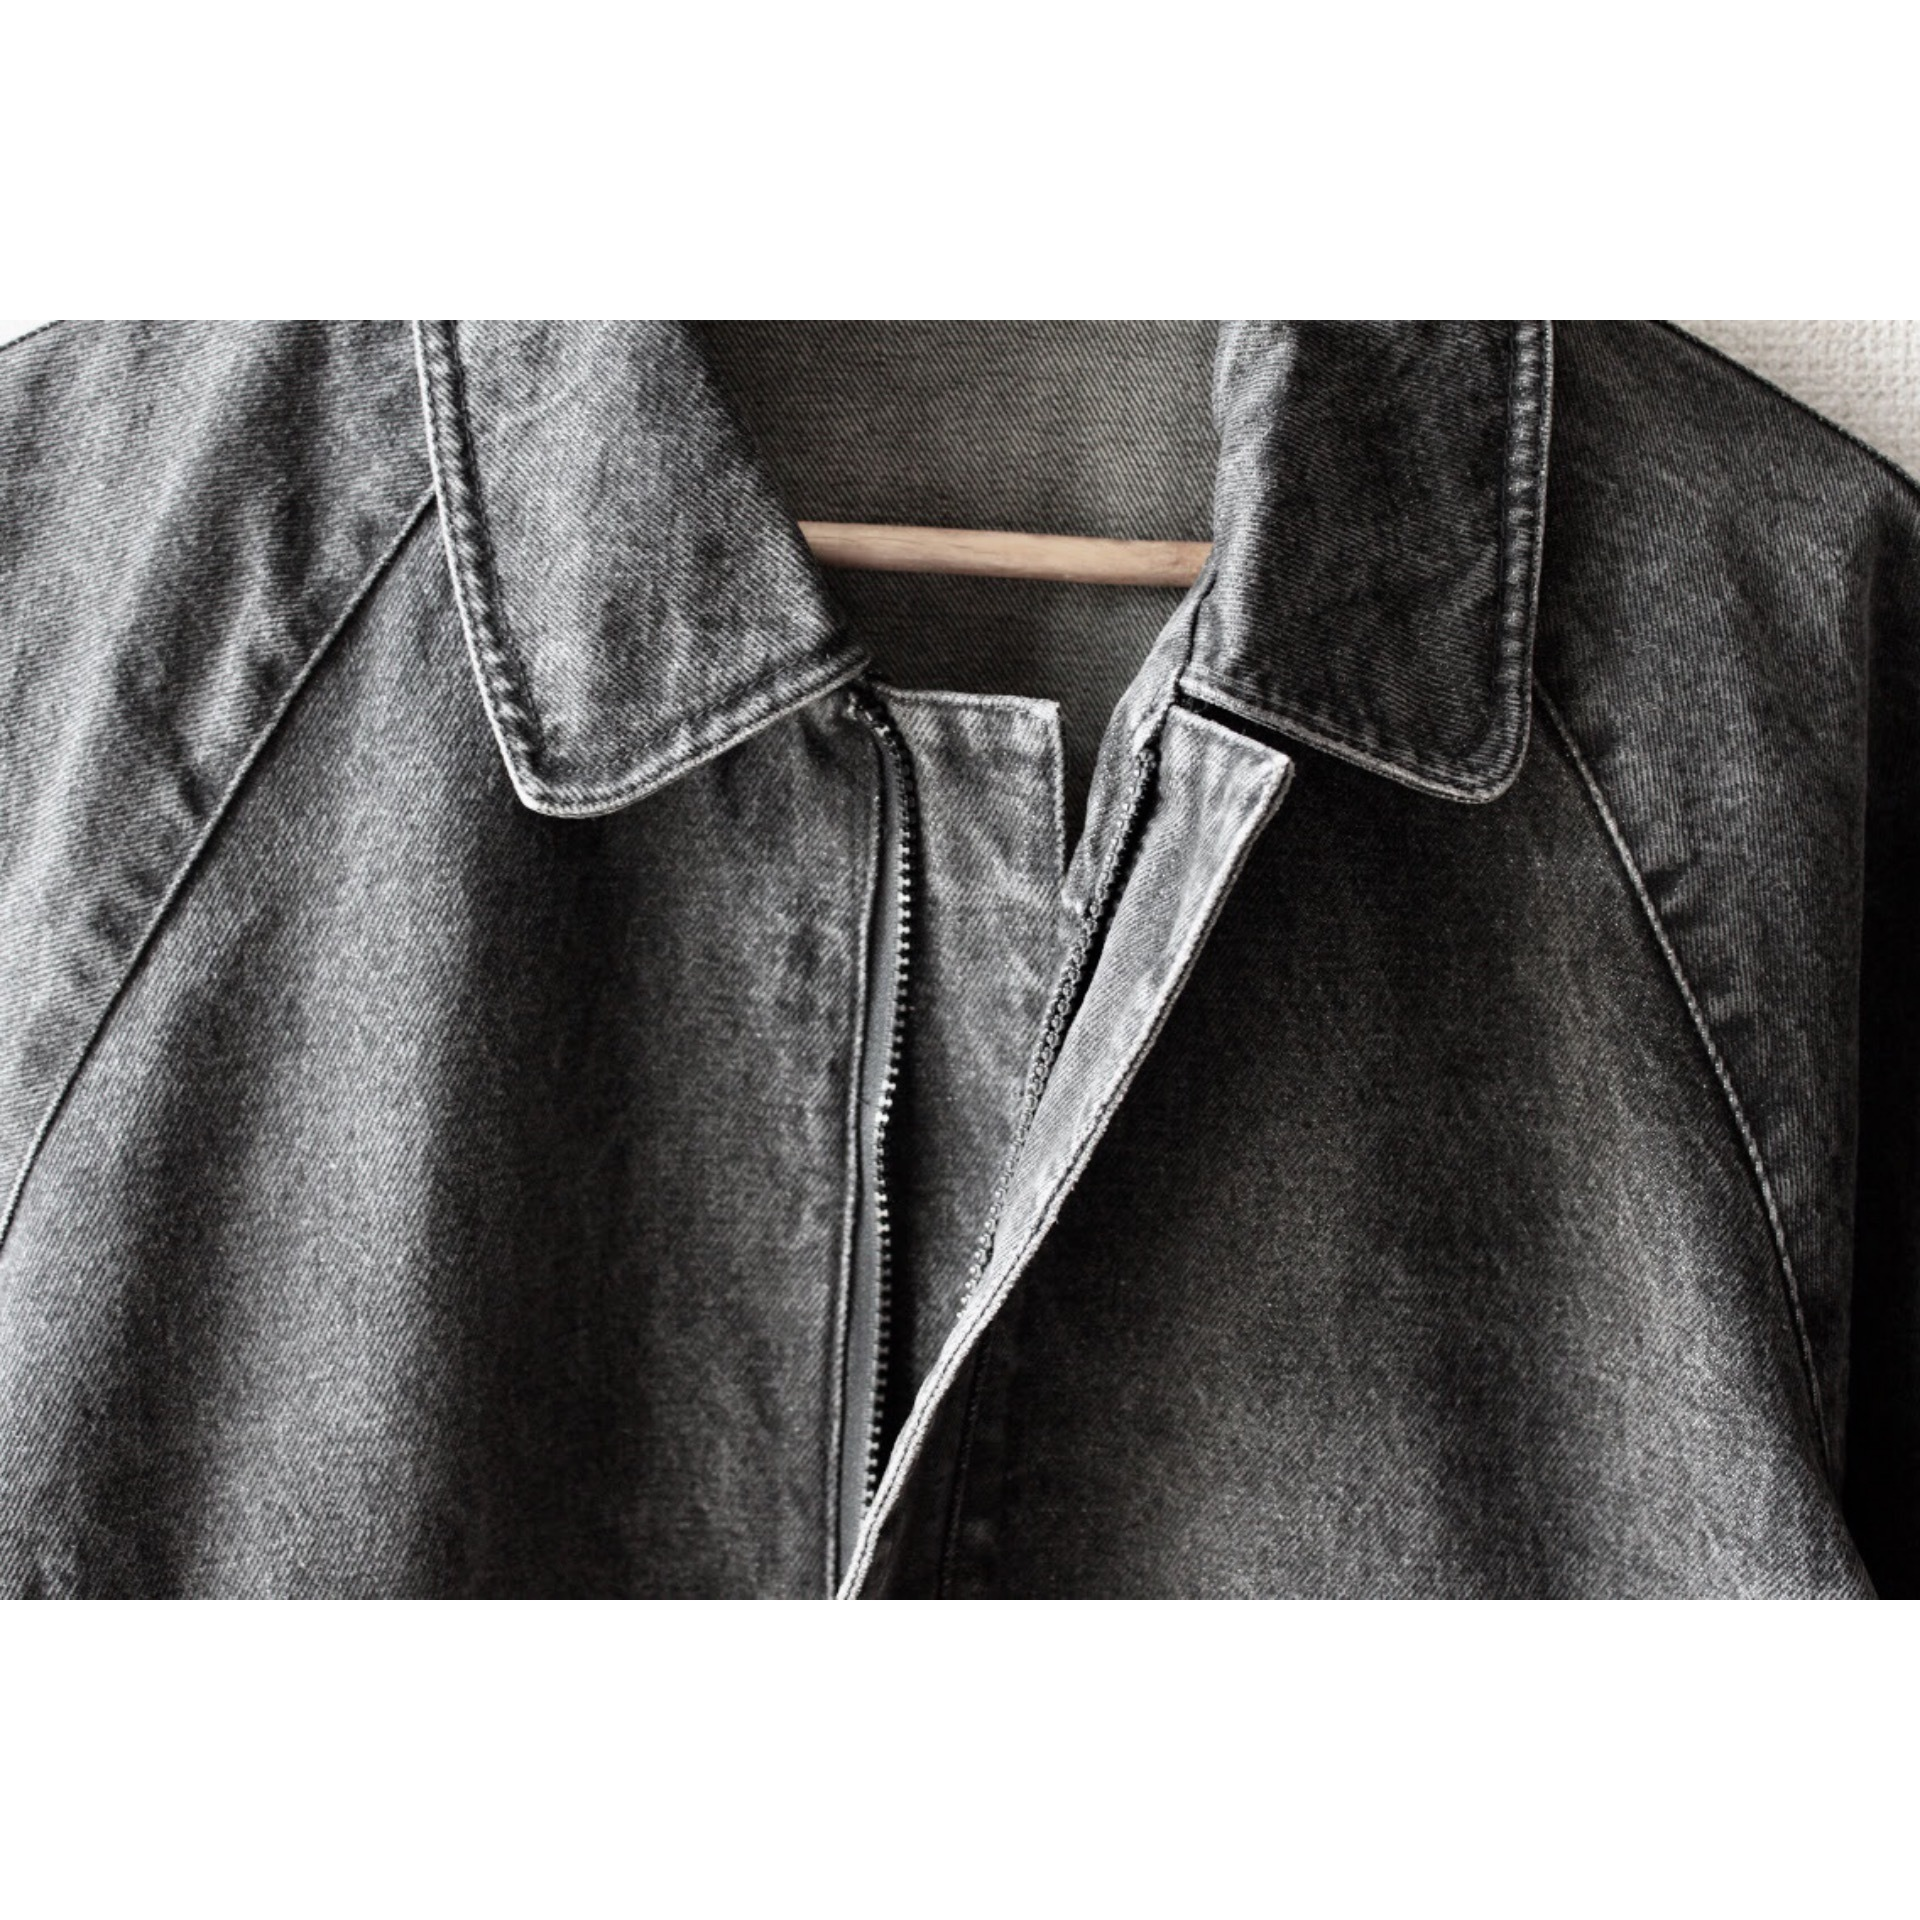 Vintage black denim jacket